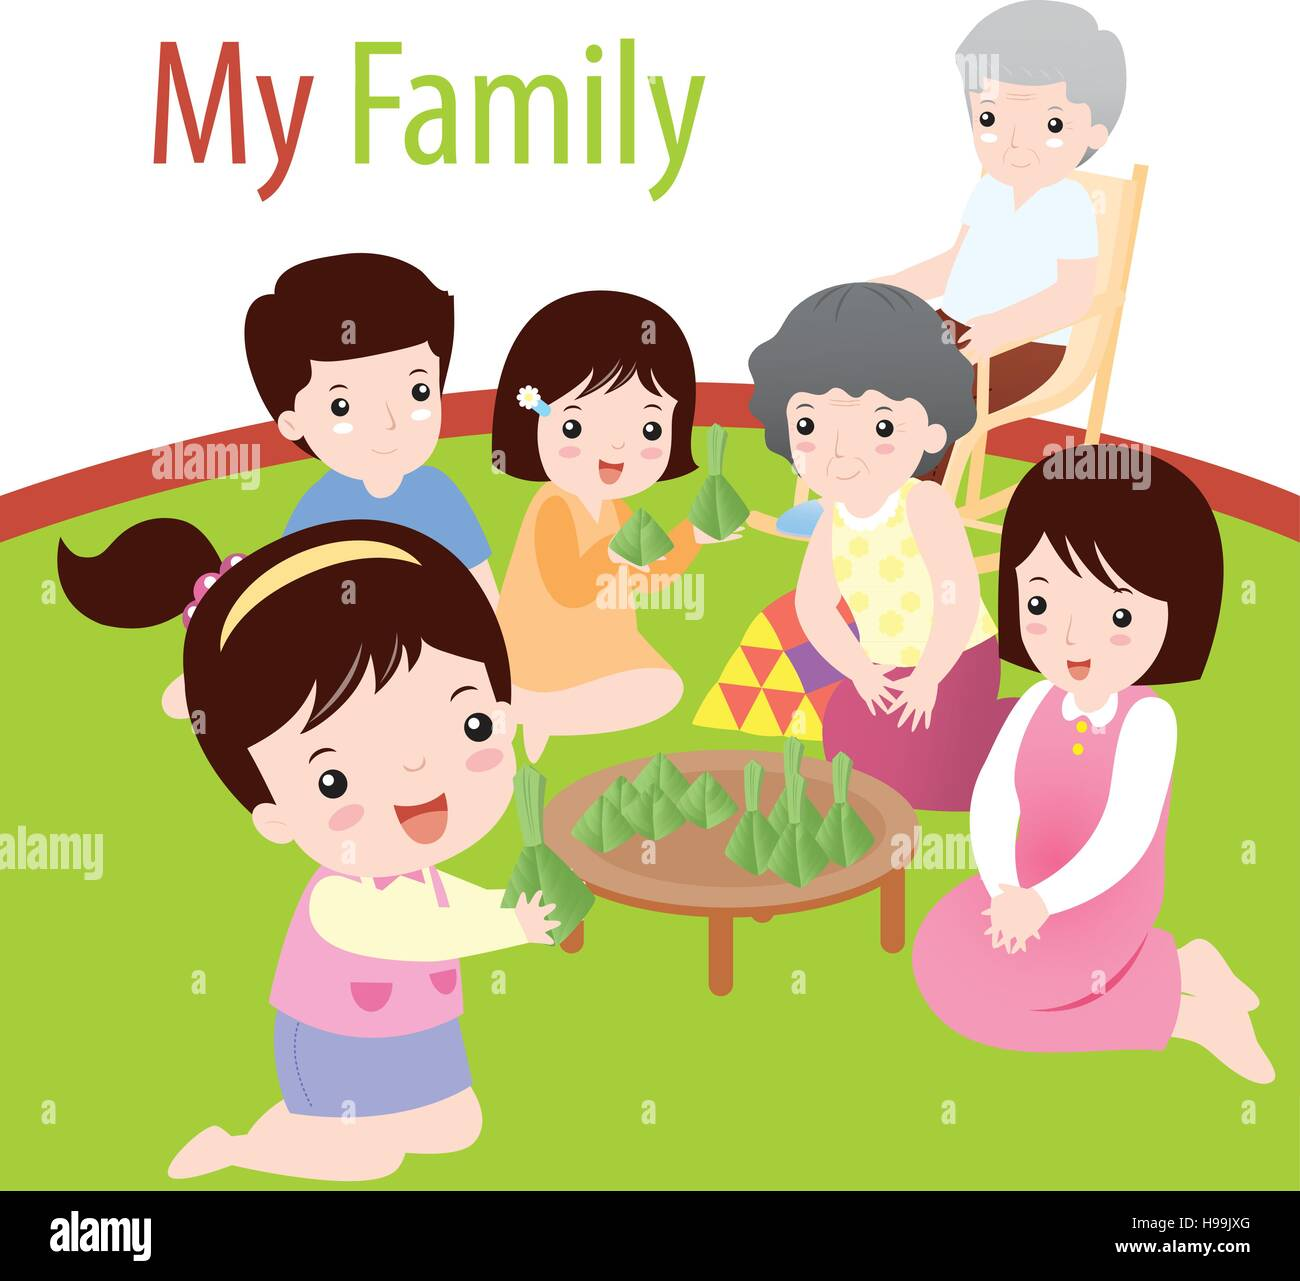 Vector illustration of My family - Stock Vector